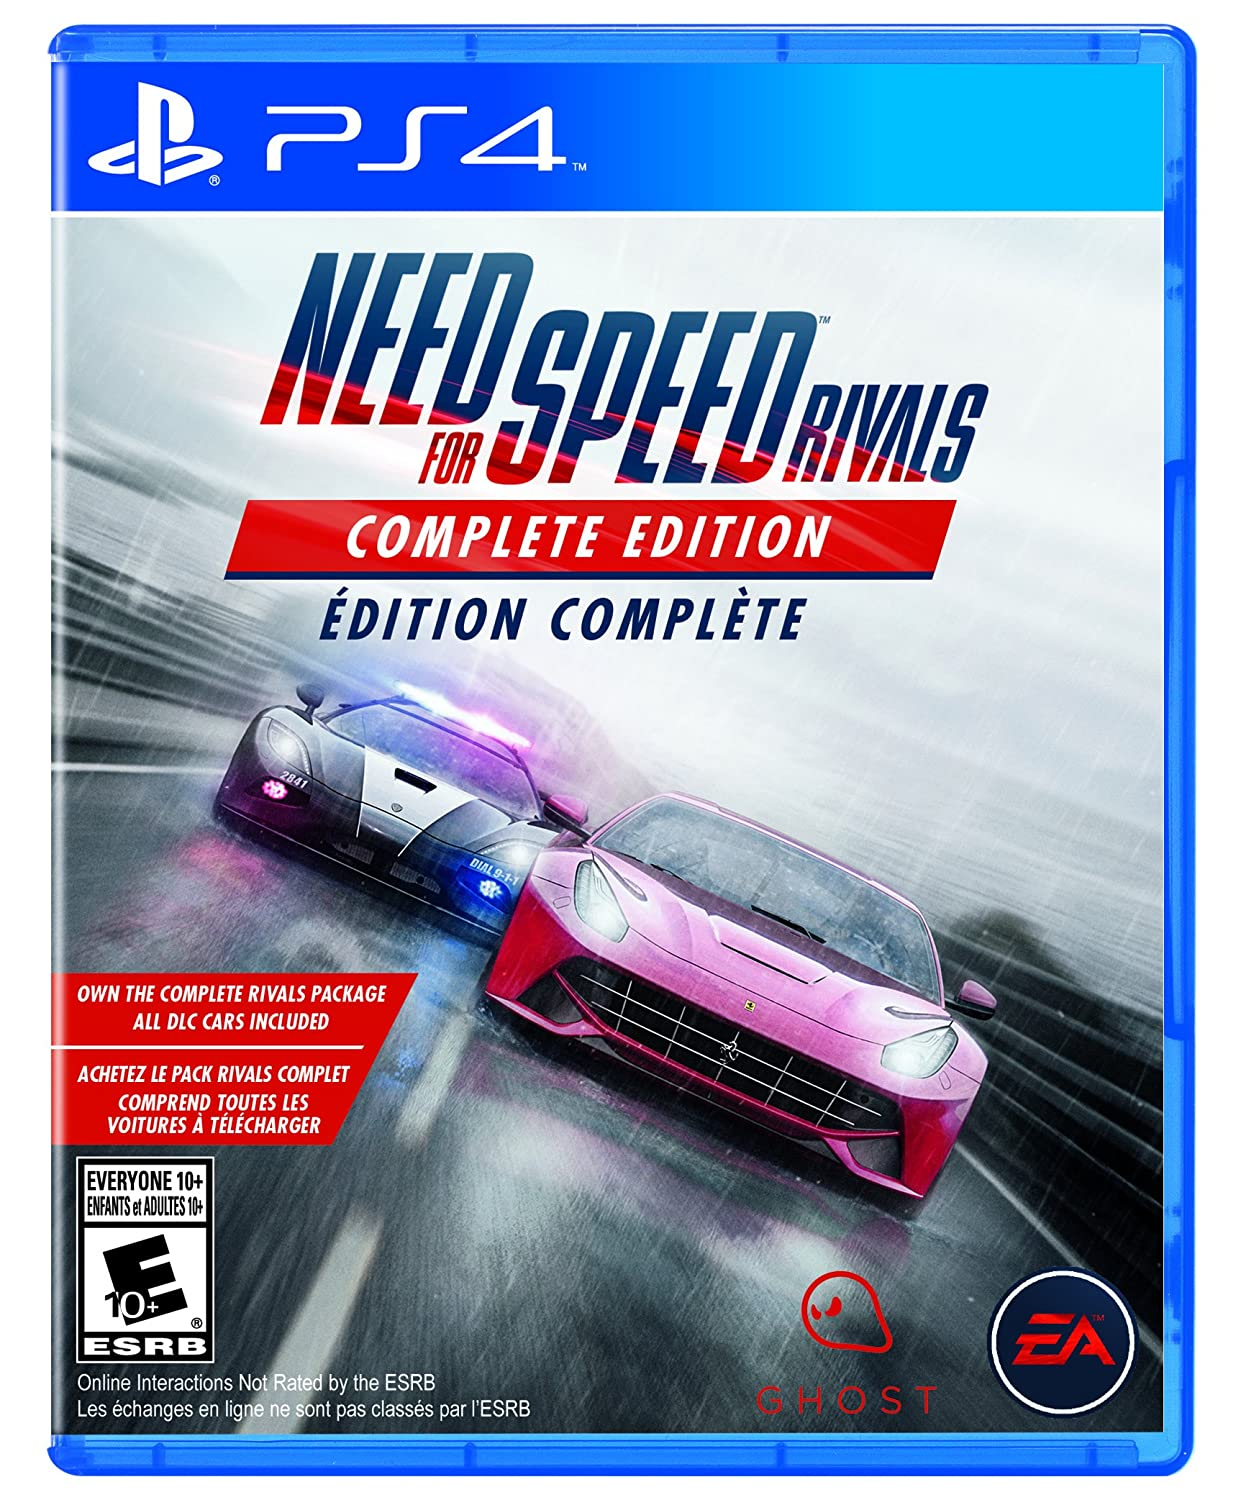 cheapest price to buy need for speed rivals complete edition on the playstation 4 compare games. Black Bedroom Furniture Sets. Home Design Ideas